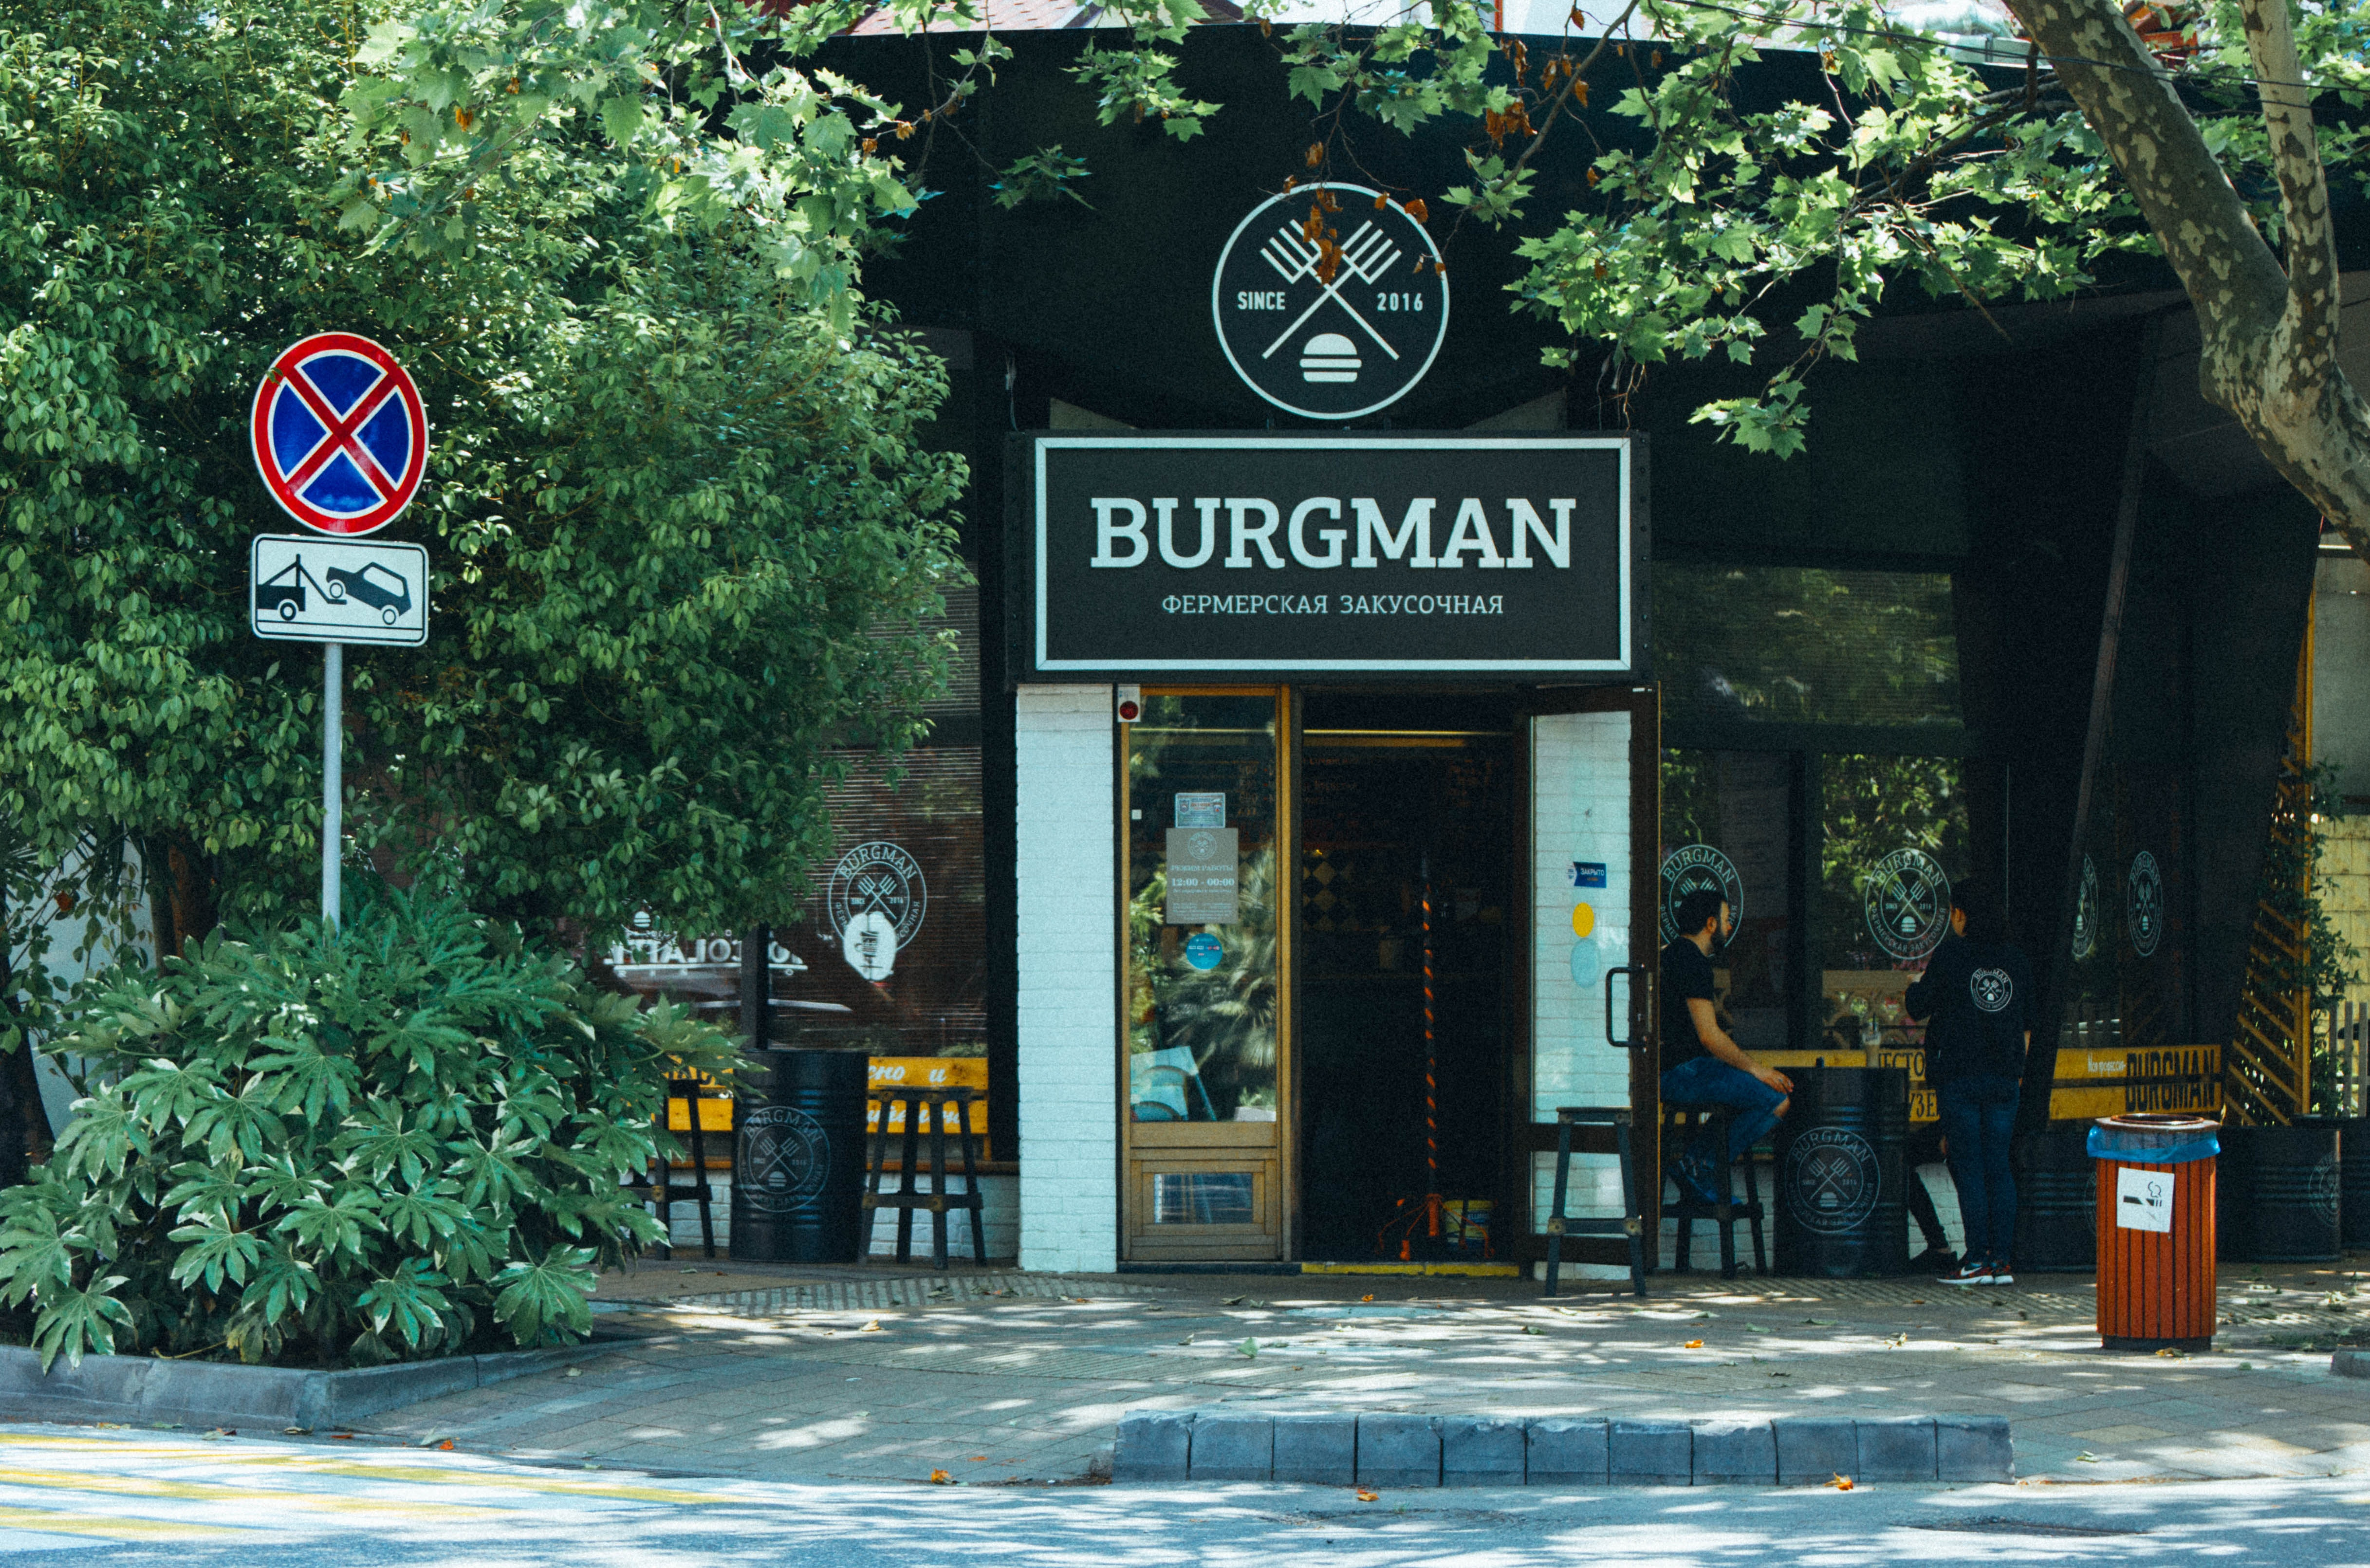 Burgman boutique photo